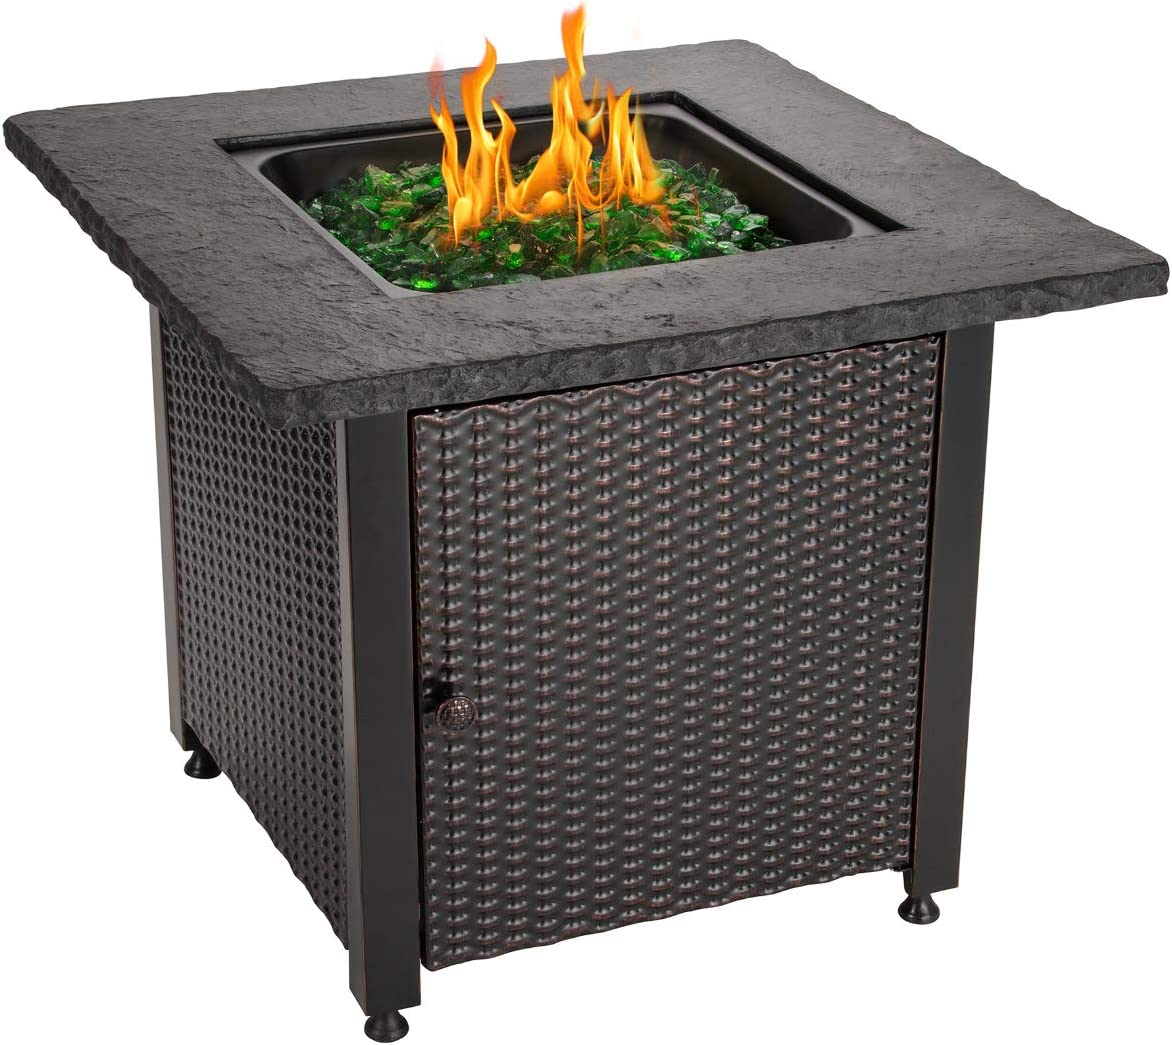 Blue Rhino Outdoor Propane Gas Fire Pit with Rock Top and Green Fire Glass – Add Warmth and Beauty to Your Backyard